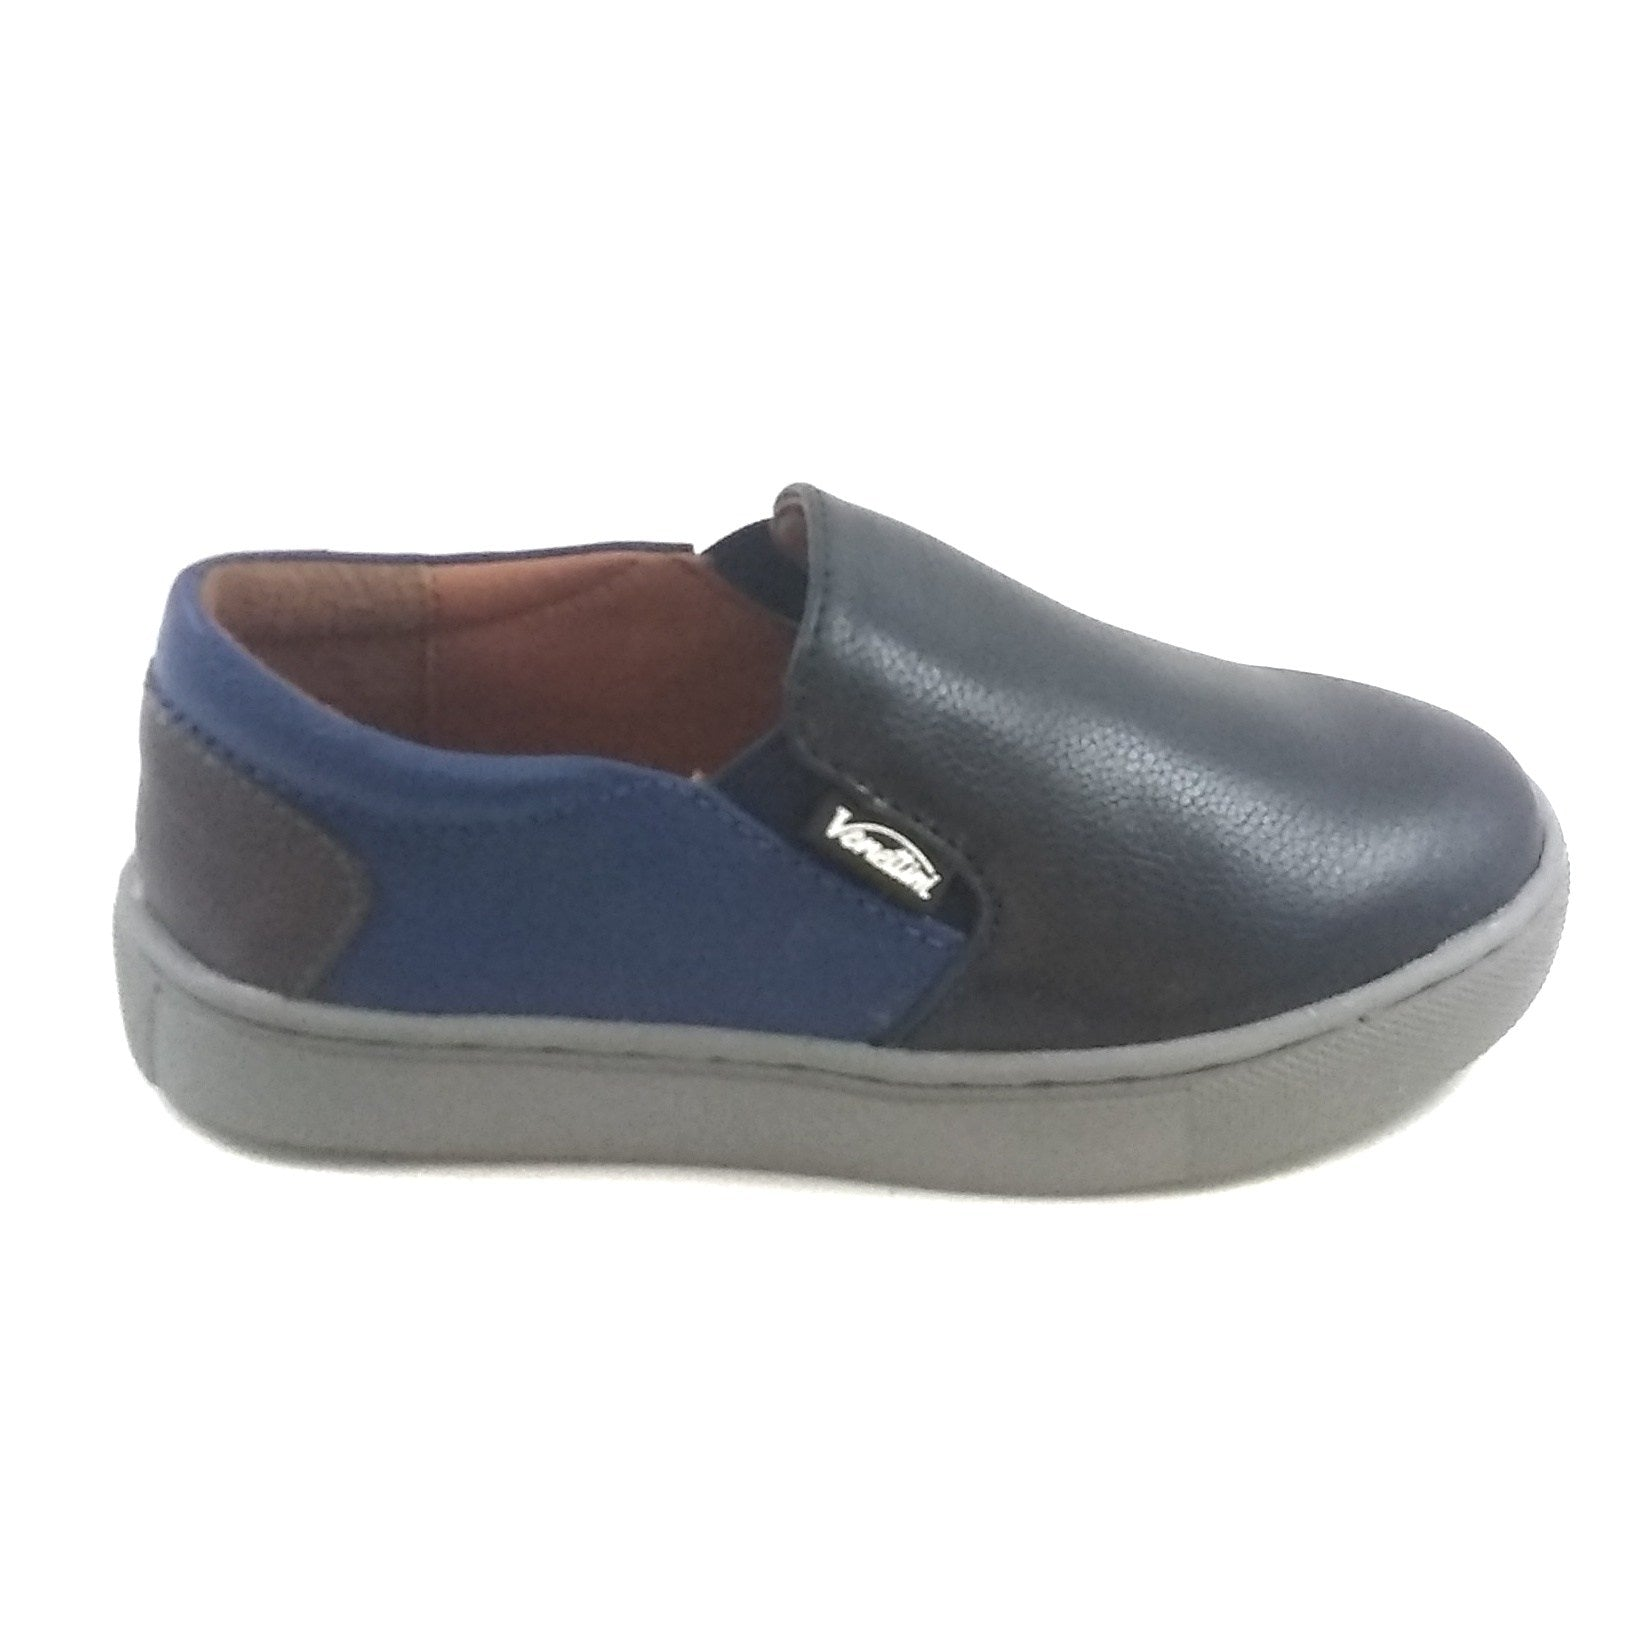 Venettini Navy Slip On with Gray Sole